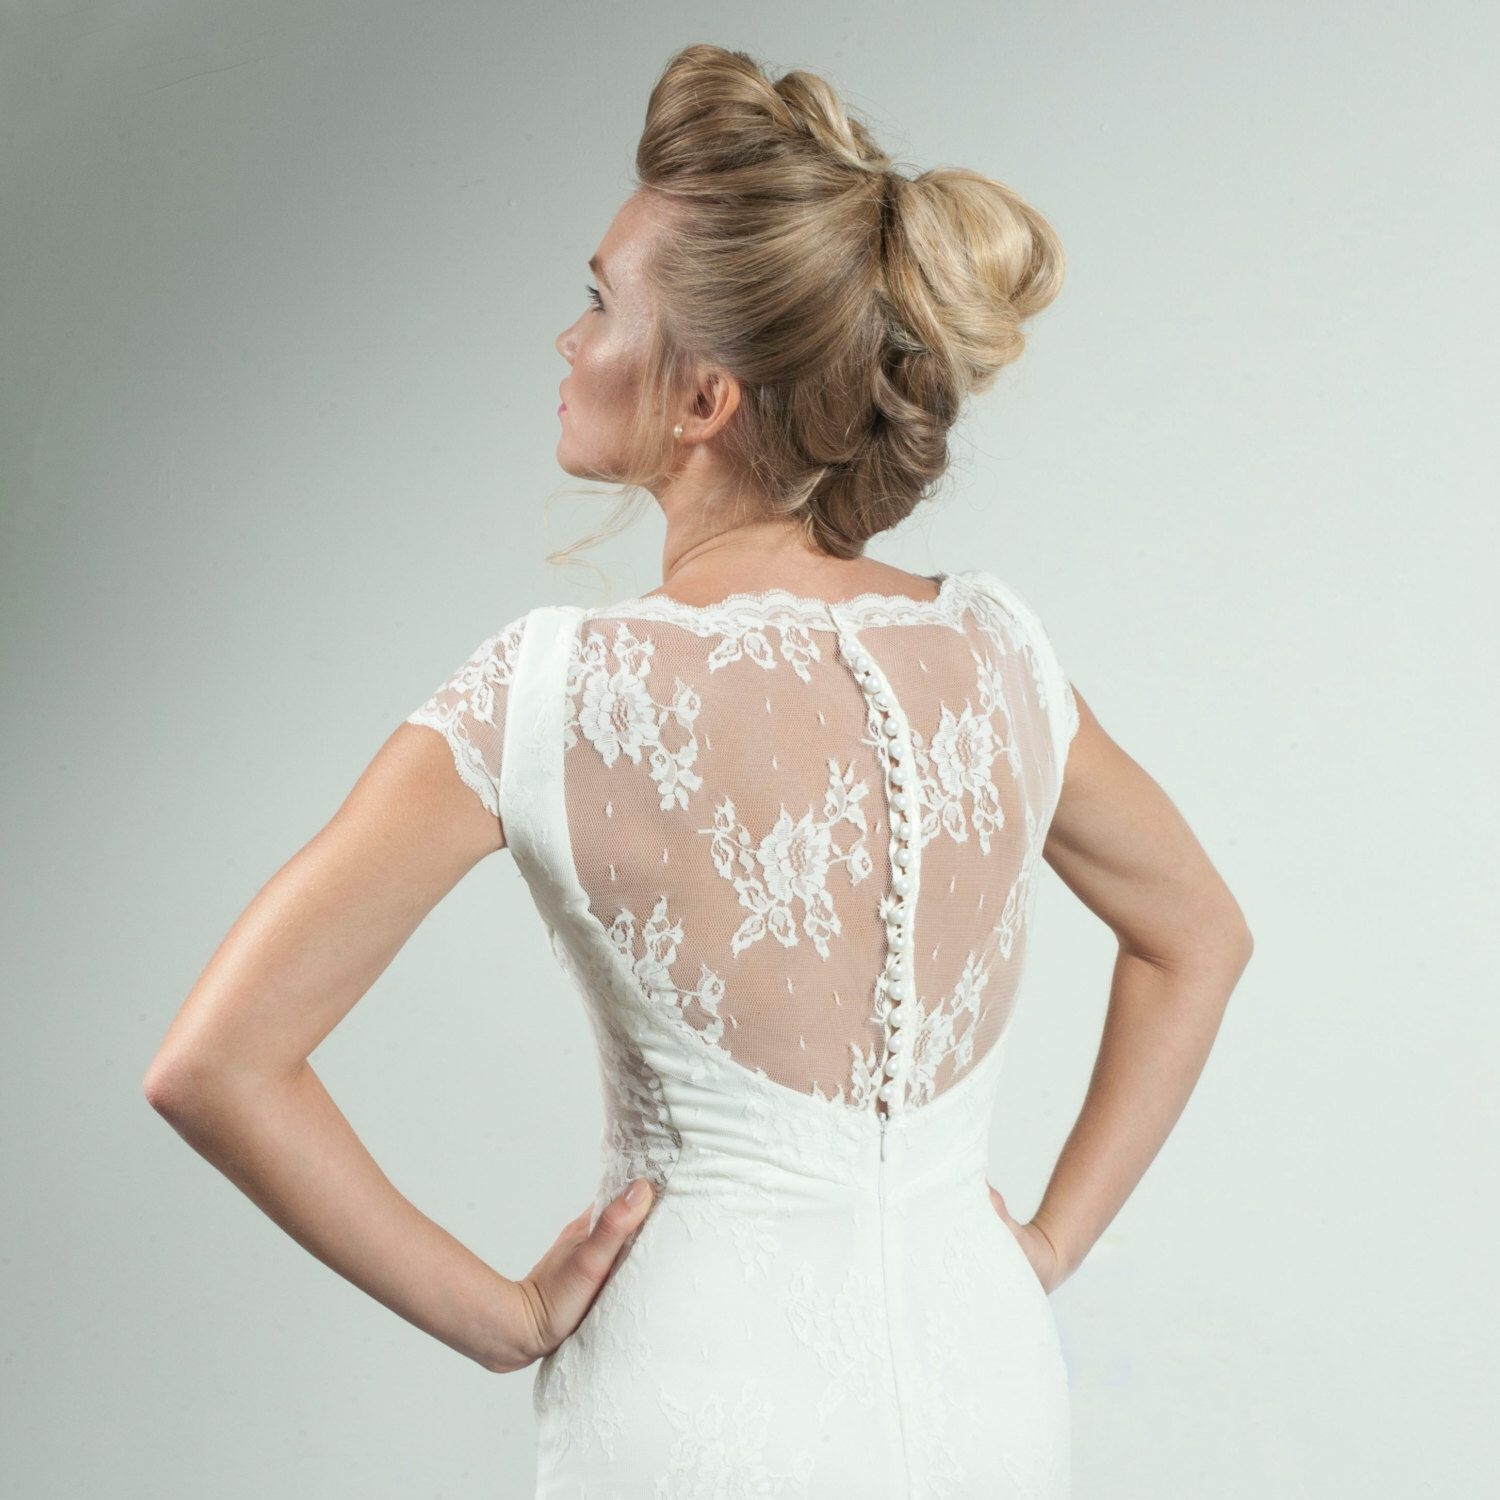 Lace wedding dress with cap sleeves vintage style buttons lace